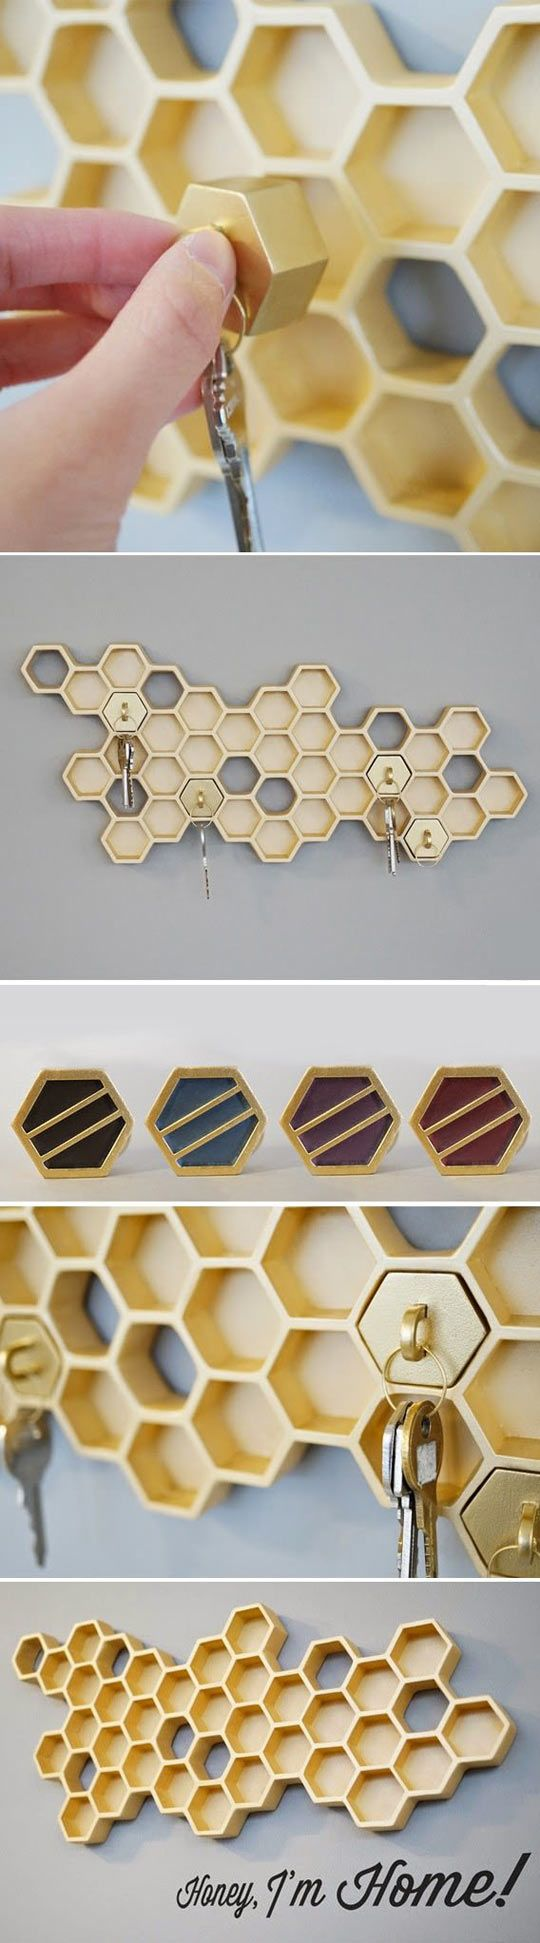 Honey I'm Home Honeycomb key rack Please, Just Take My Money